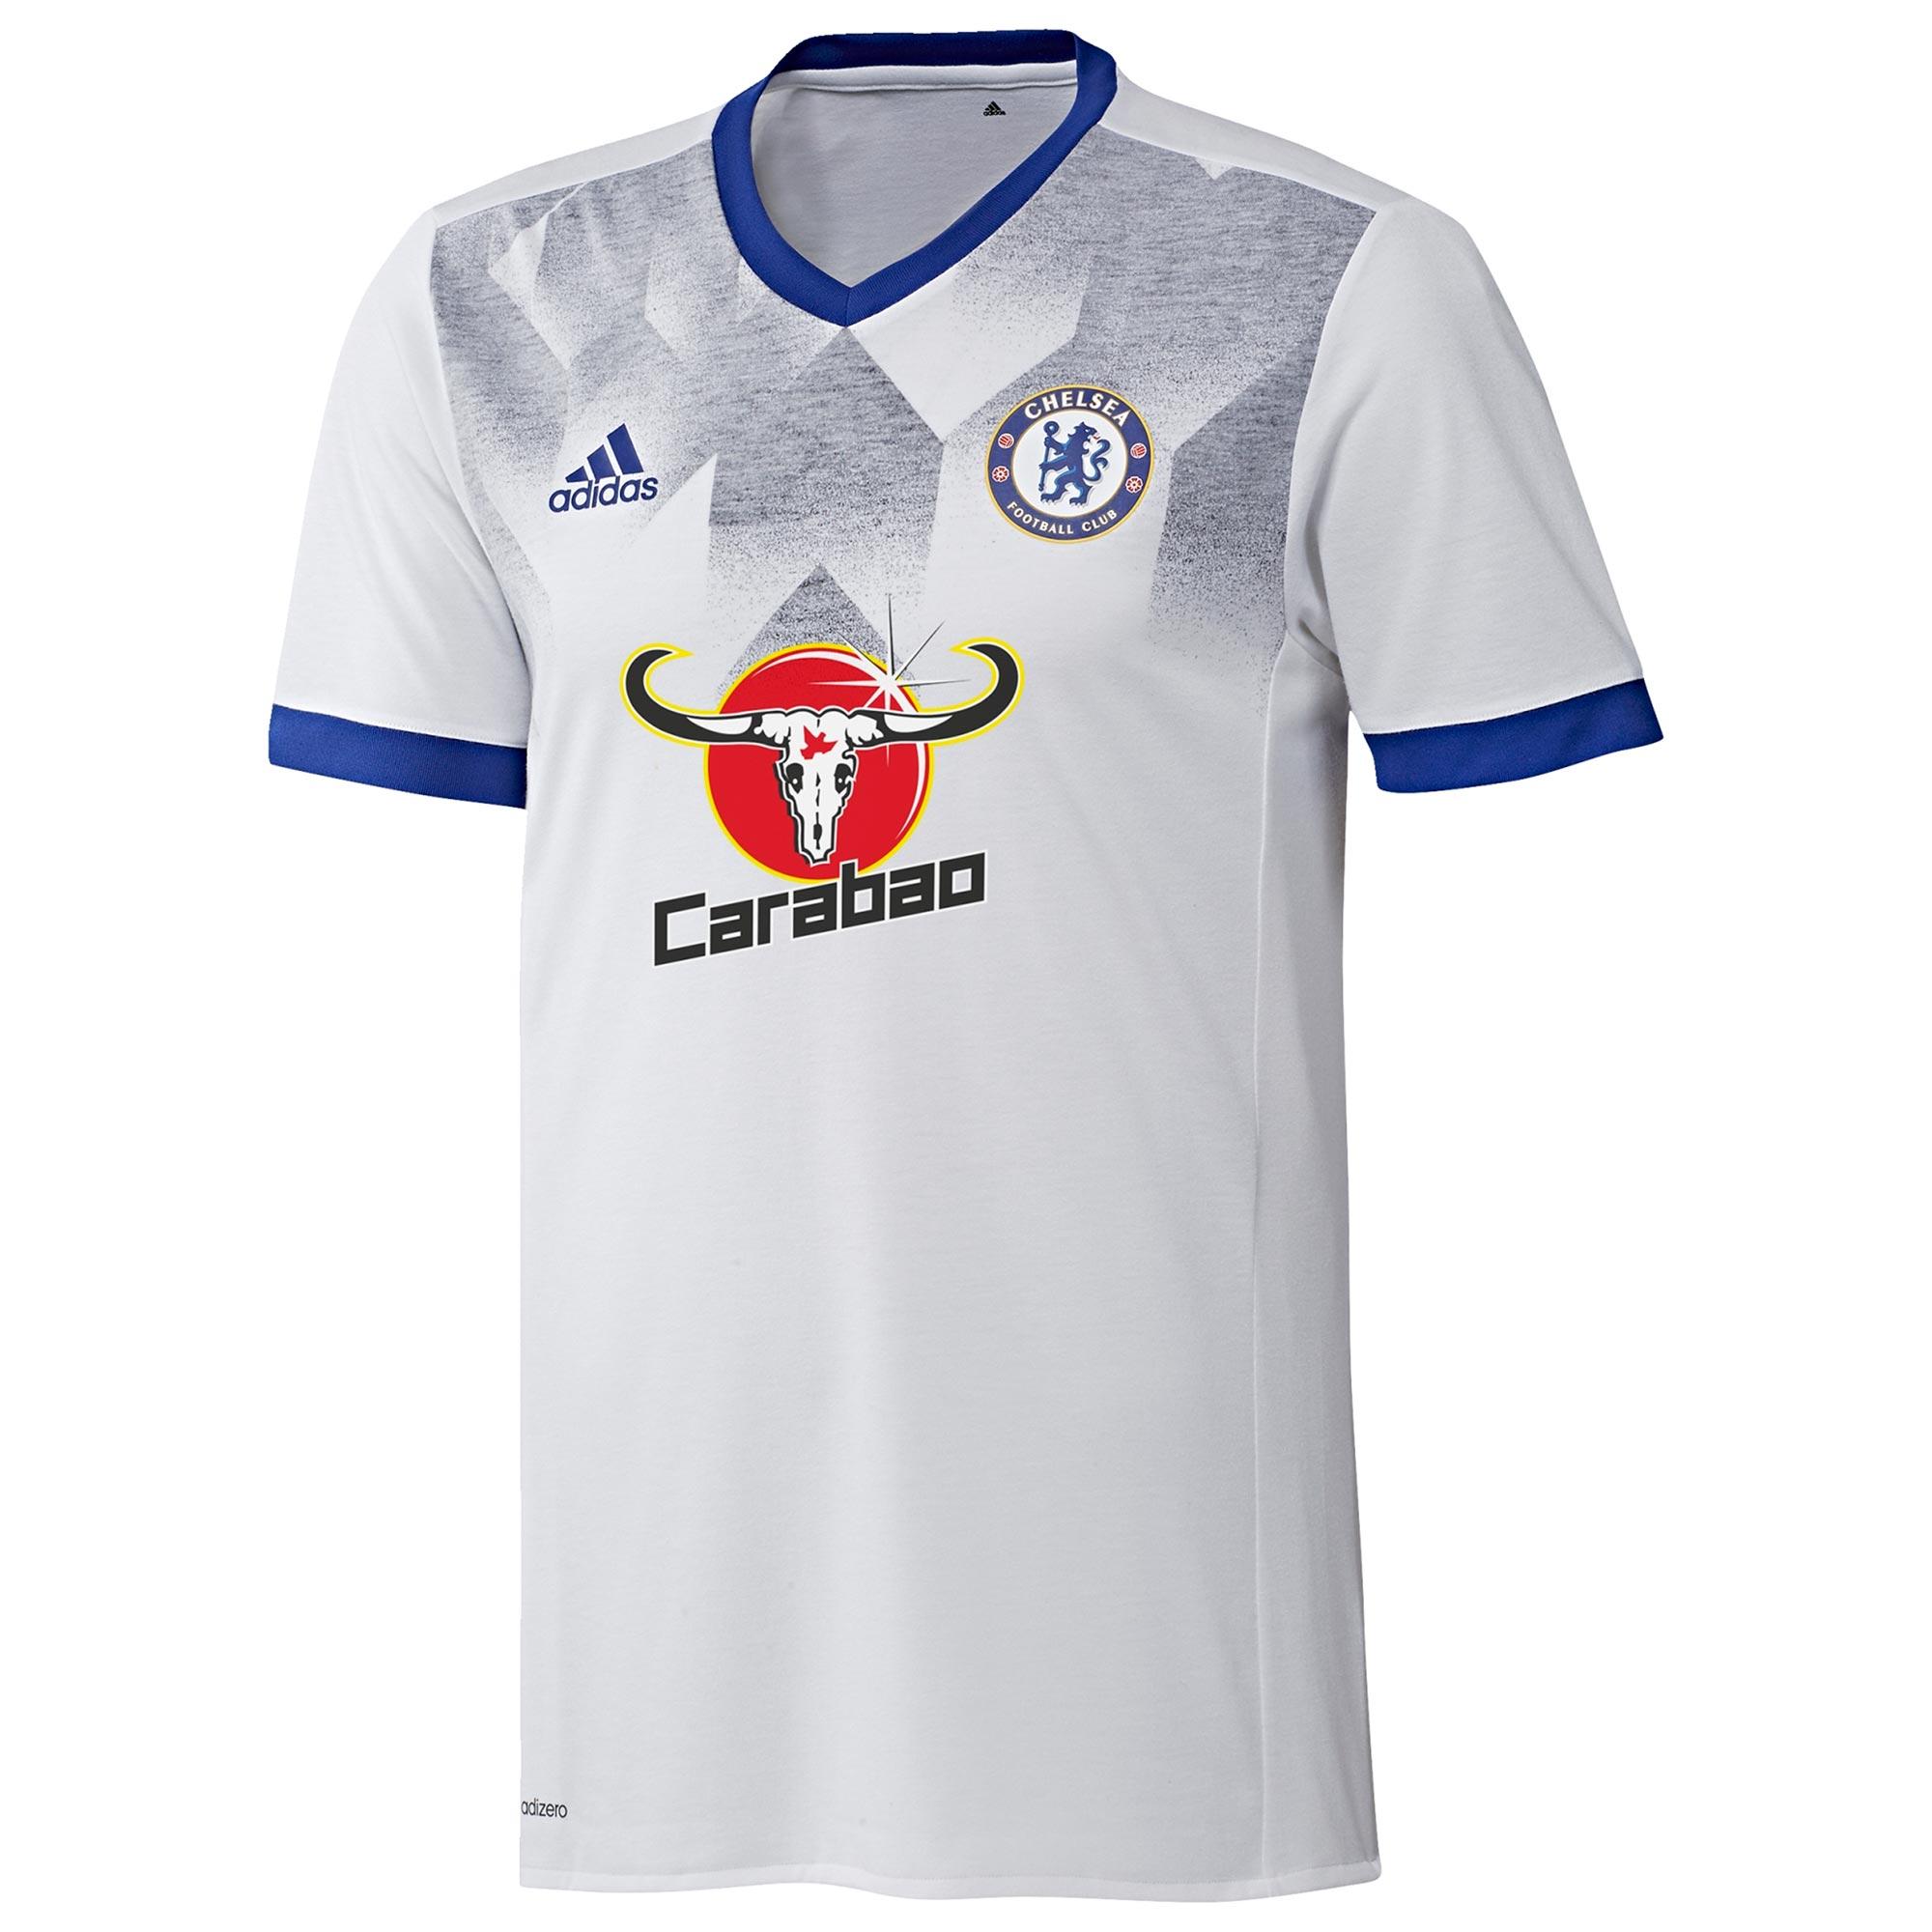 Chelsea Pre-Match Shirt - White - Blue   With gritty defence and lightning attacks, Chelsea FC continue to build a winning legacy. Now, fans can put their unwavering love for the Blues on proud display in this Chelsea Pre-Match Shirt.   Made of recycled fabric with a printed pattern, this lightweight jersey has a slim fit, its chest finished with a woven crest that reminds the world there's no better place to be than Stamford Bridge. Details: • • Patterned fabric • Slim fit with crewneck • Functional and lightweight adizero • Woven Chelsea crest on left chest • 100% recycled polyester interlock • Embroidered adidas logo